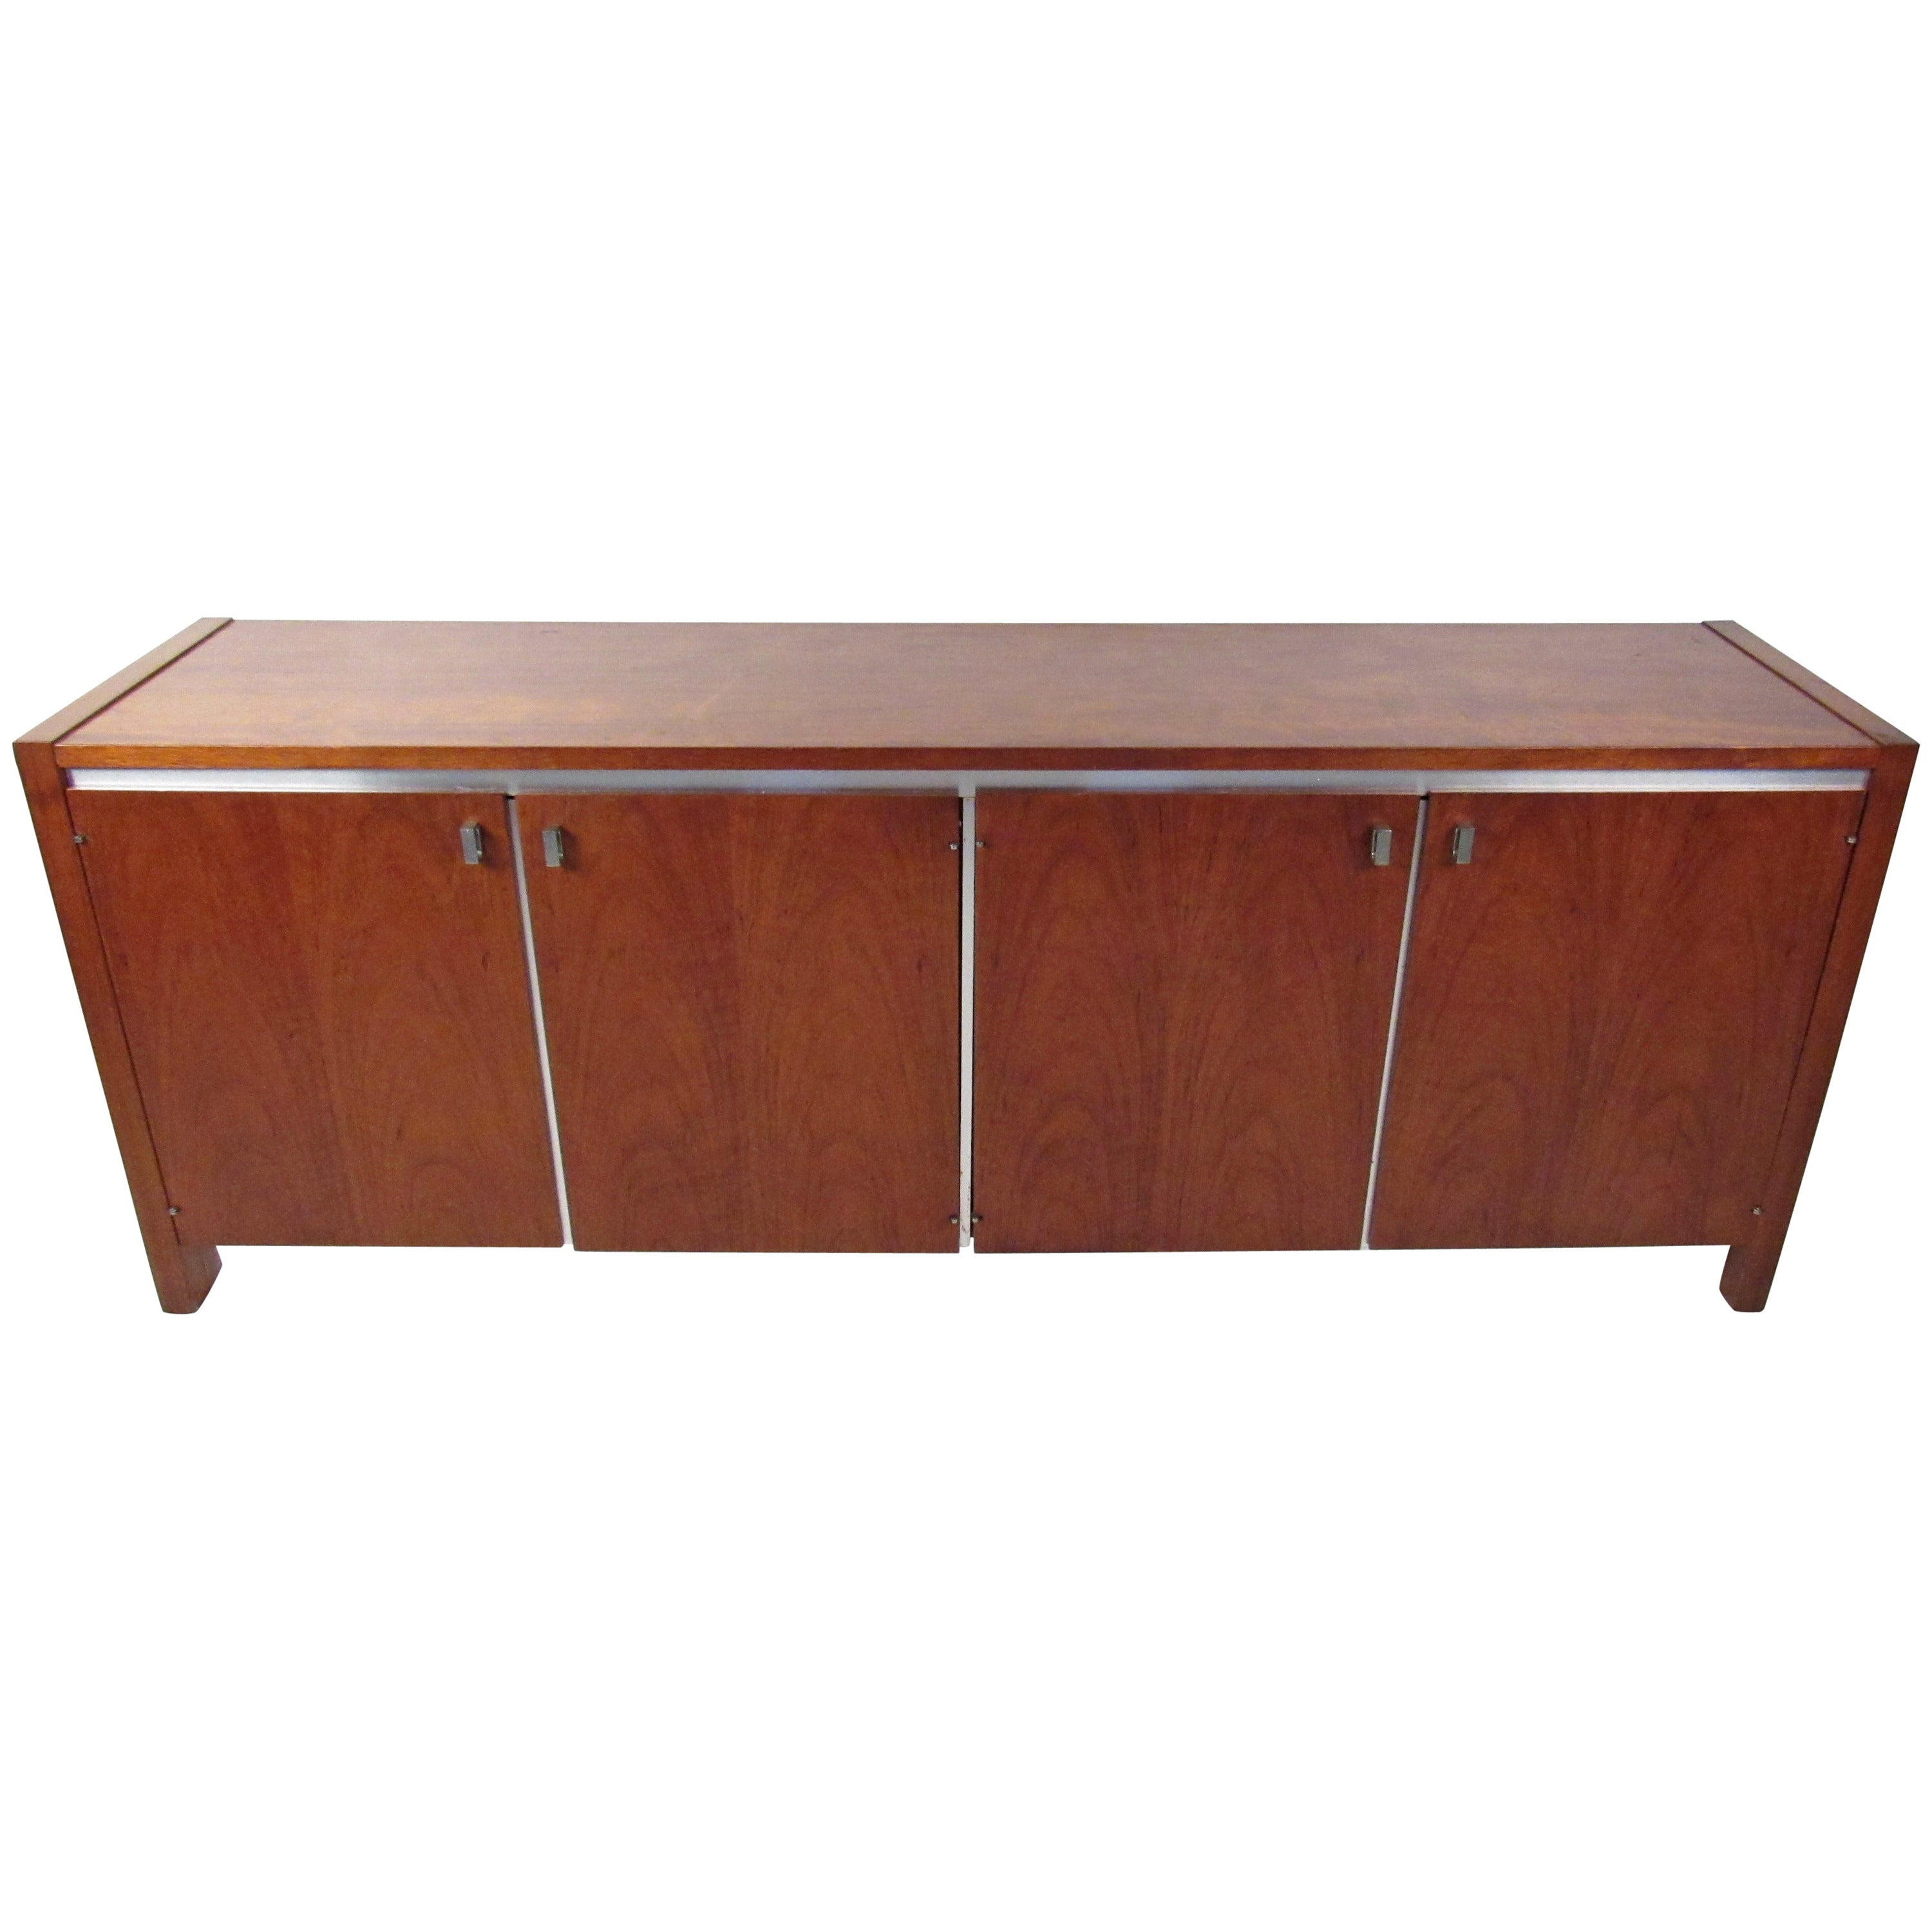 Mid-Century Credenza by Founders